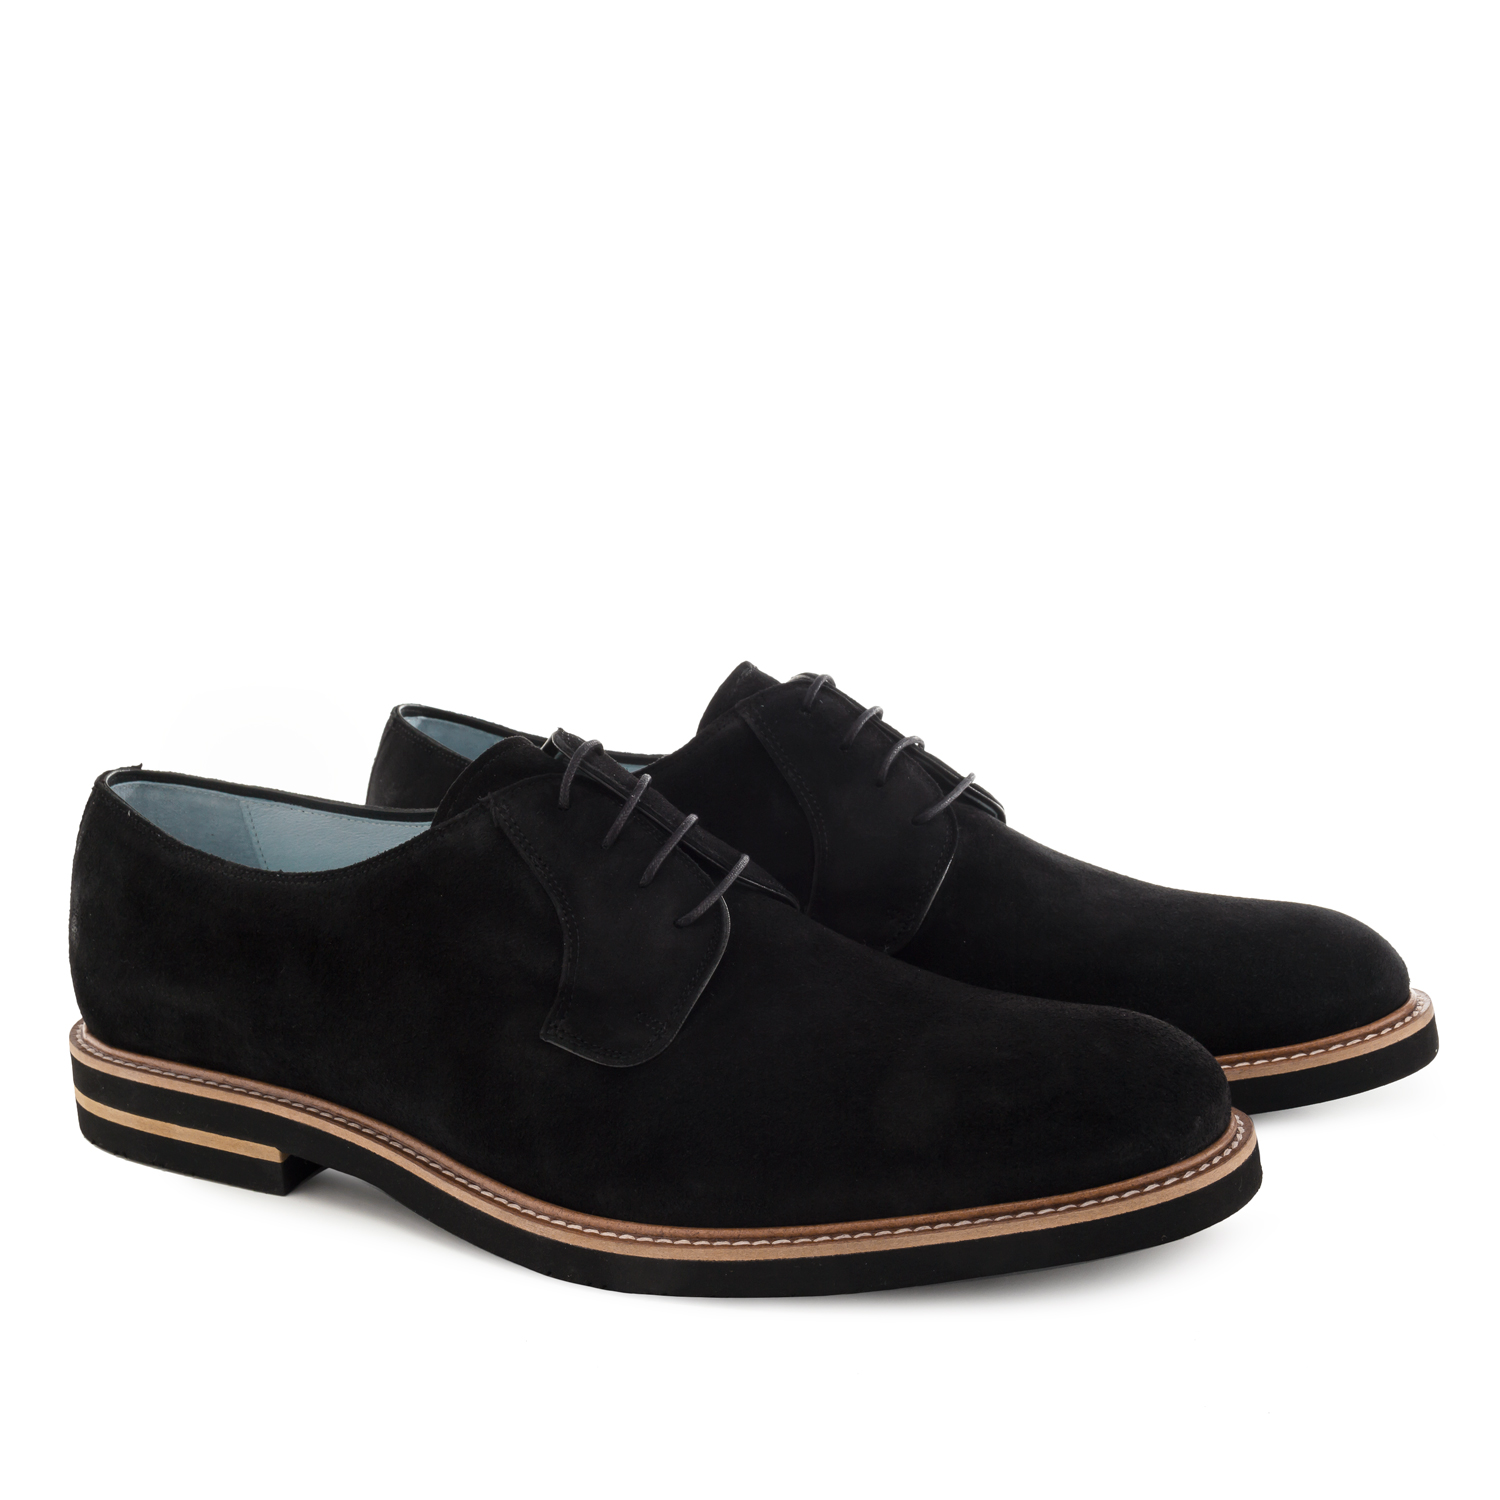 Zapatos Oxford Serraje Negro